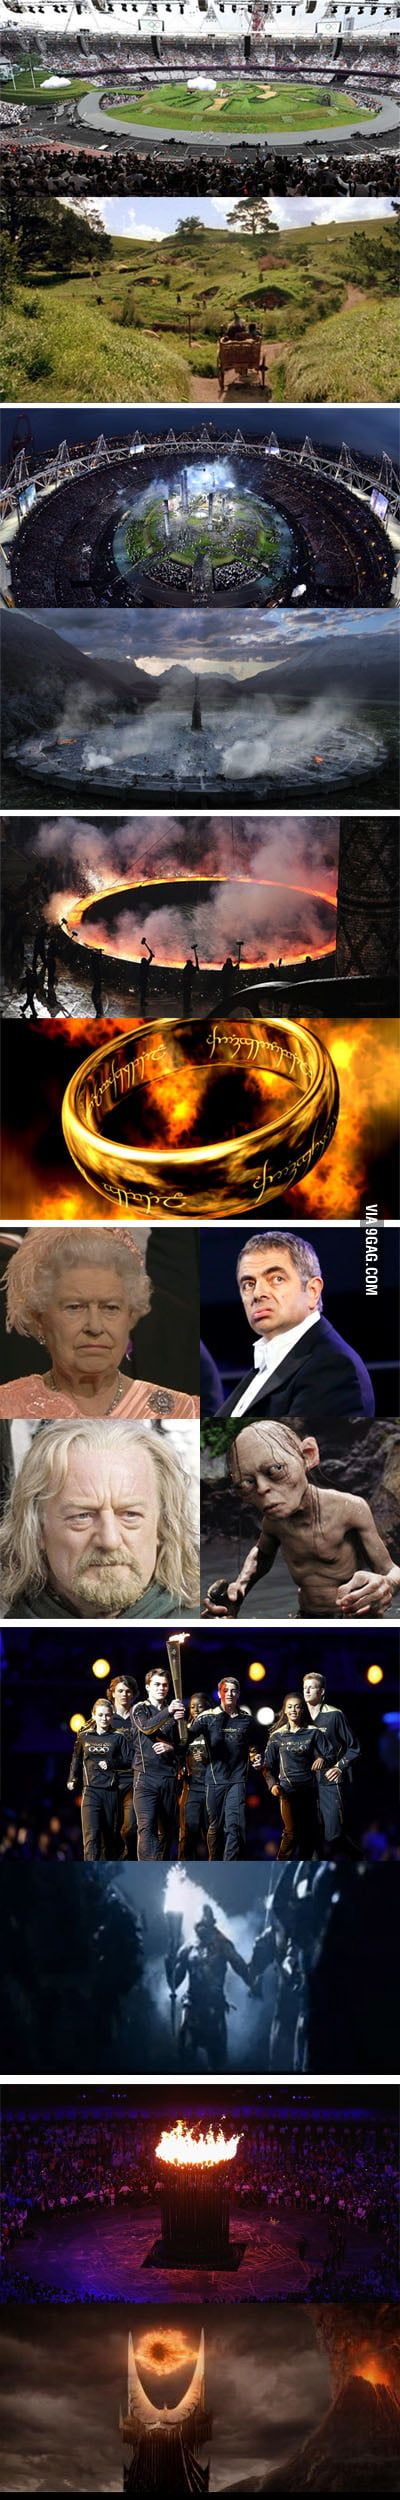 Olympics Opening Ceremony = Lord of the Rings